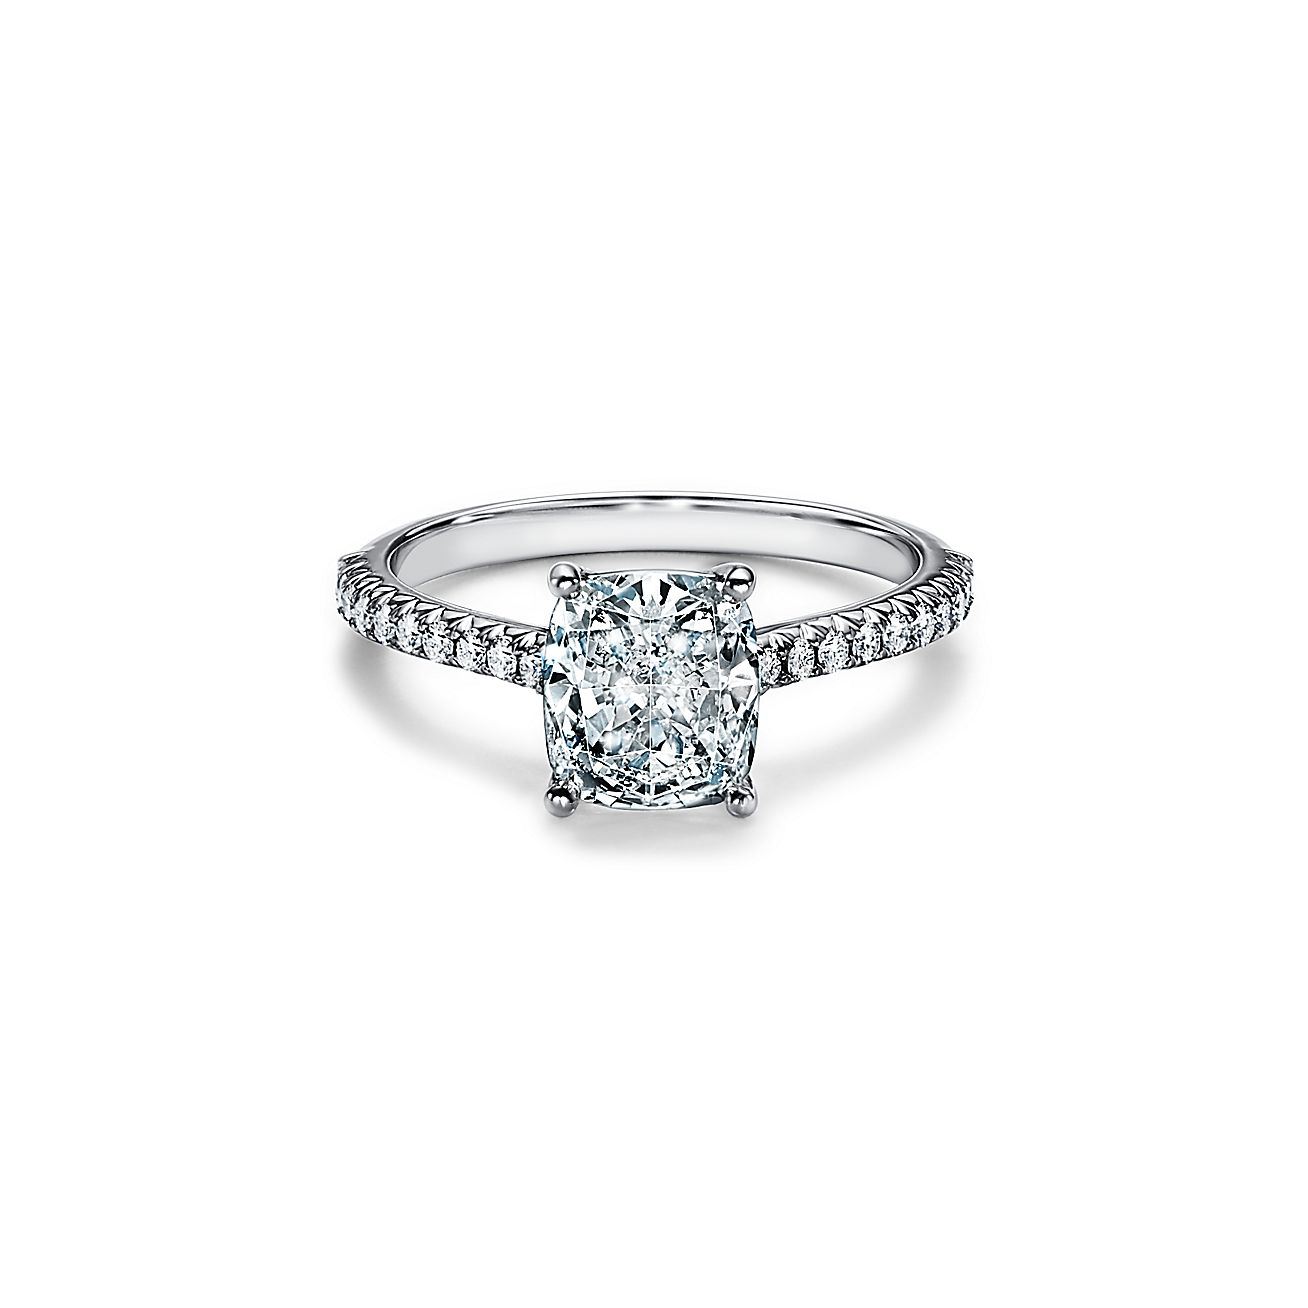 Tiffany Novo Cushion Cut Engagement Ring With A Pave Diamond Band In Platinum Tiffany Co